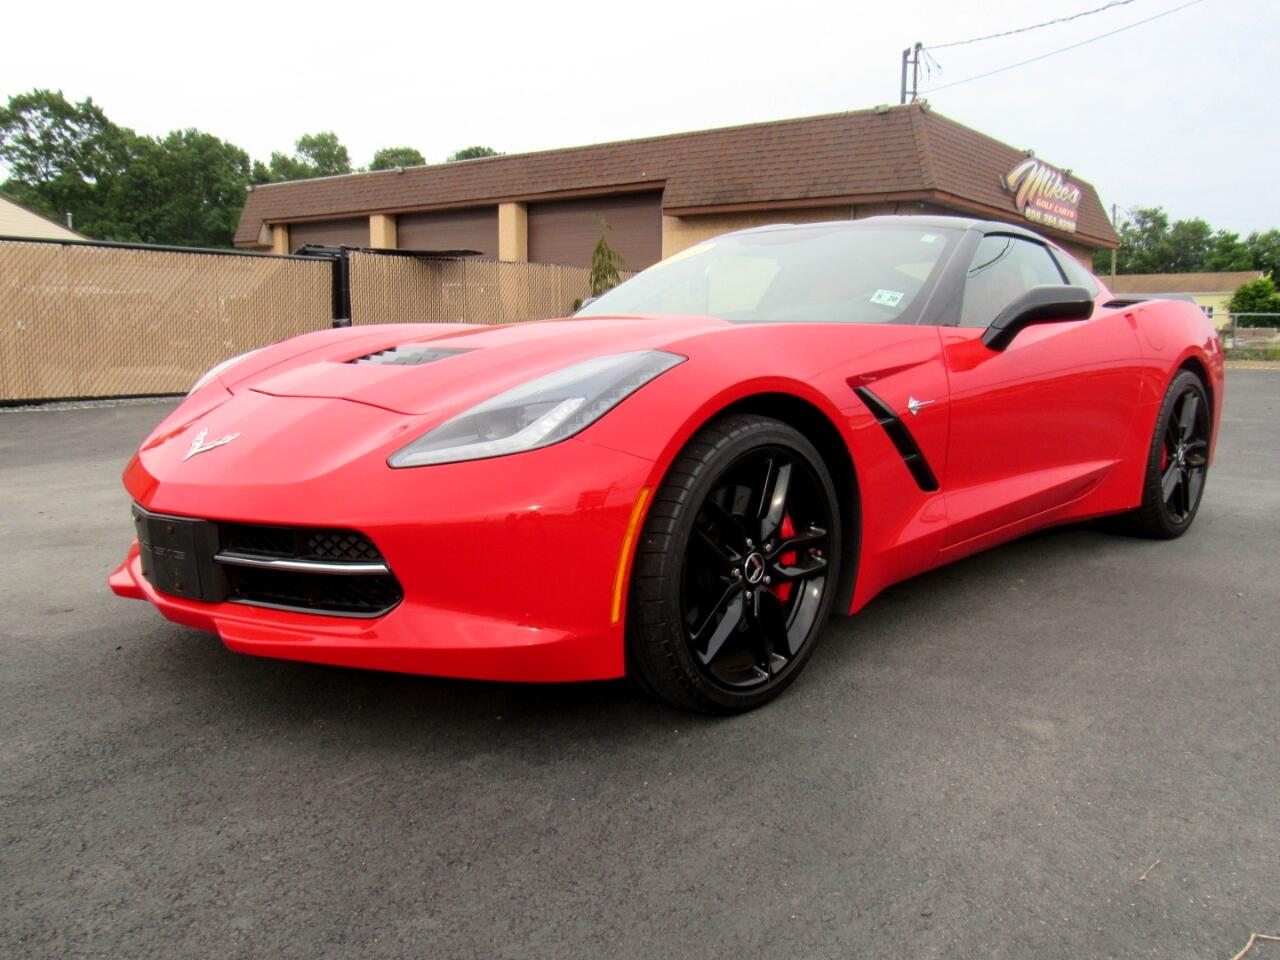 2015 Chevrolet Corvette 2dr Stingray Z51 Cpe w/2LT